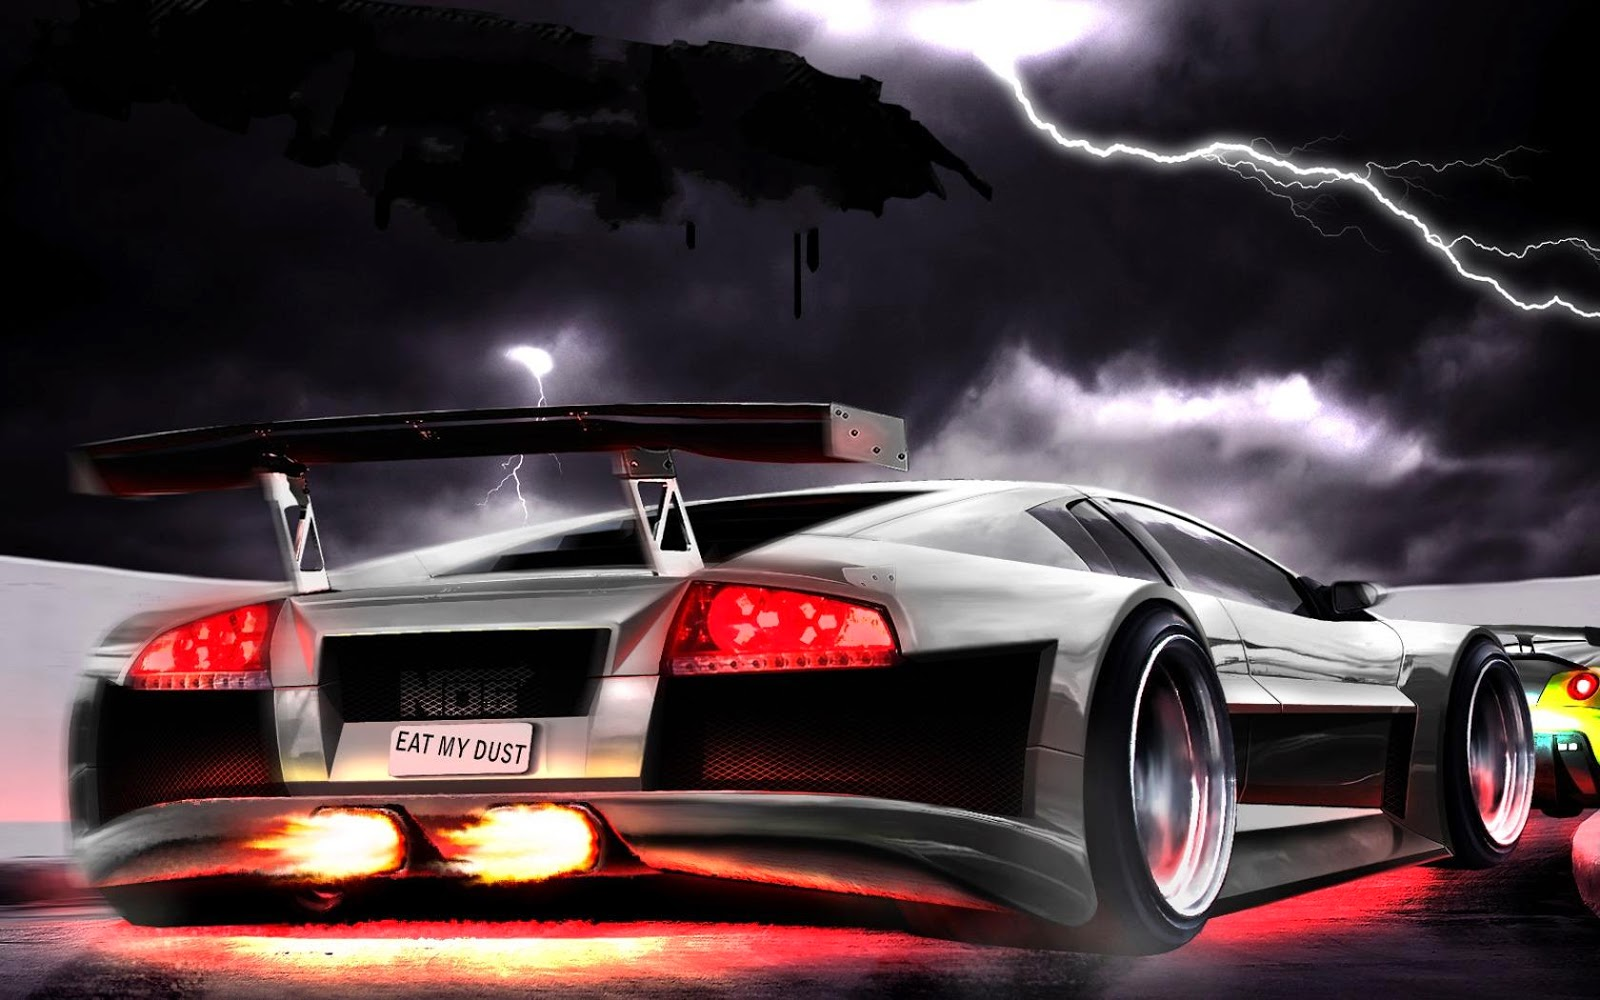 3d Car Wallpaper Hd - Cars Wallpapers For Pc , HD Wallpaper & Backgrounds